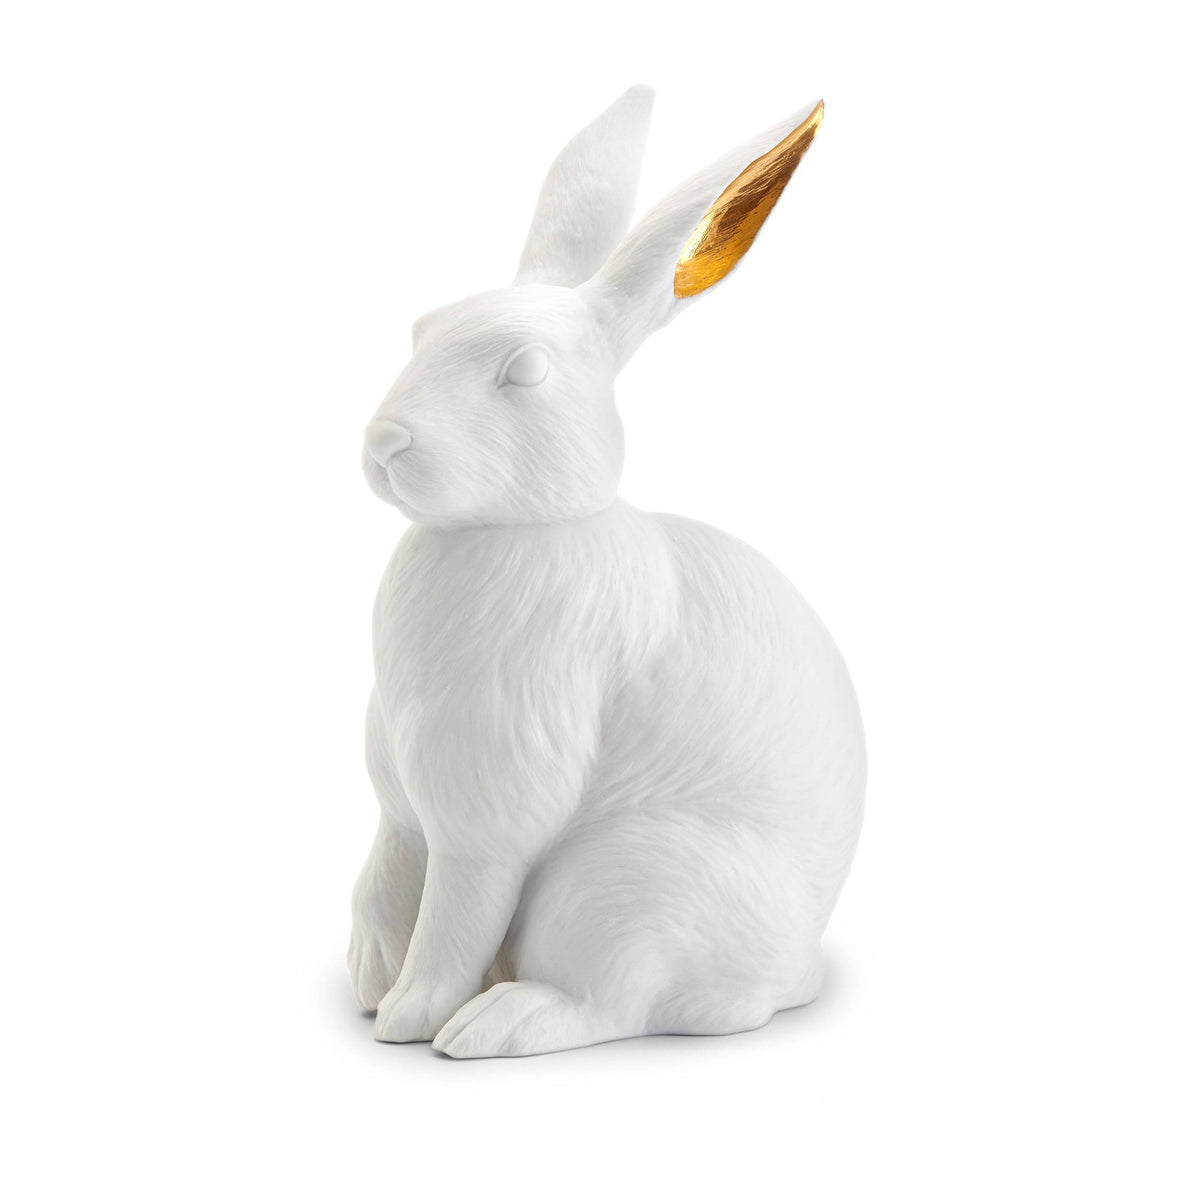 Lapin Rabbit Sculpture